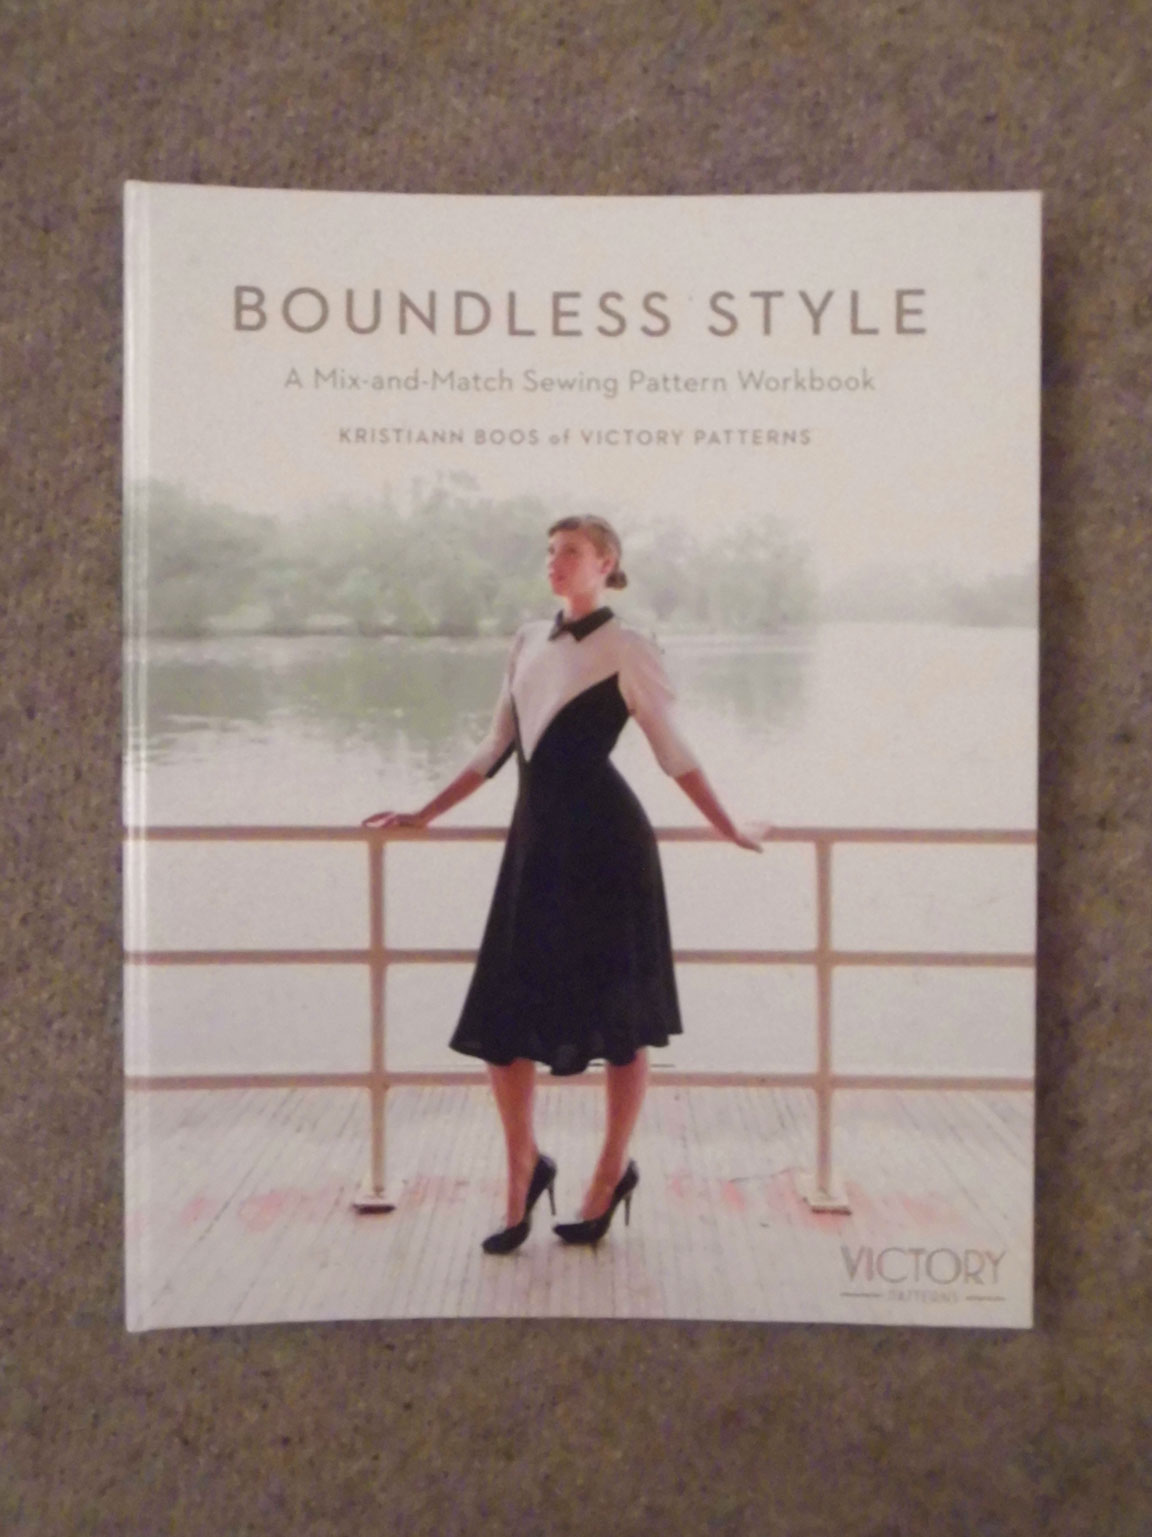 how to make a boundless